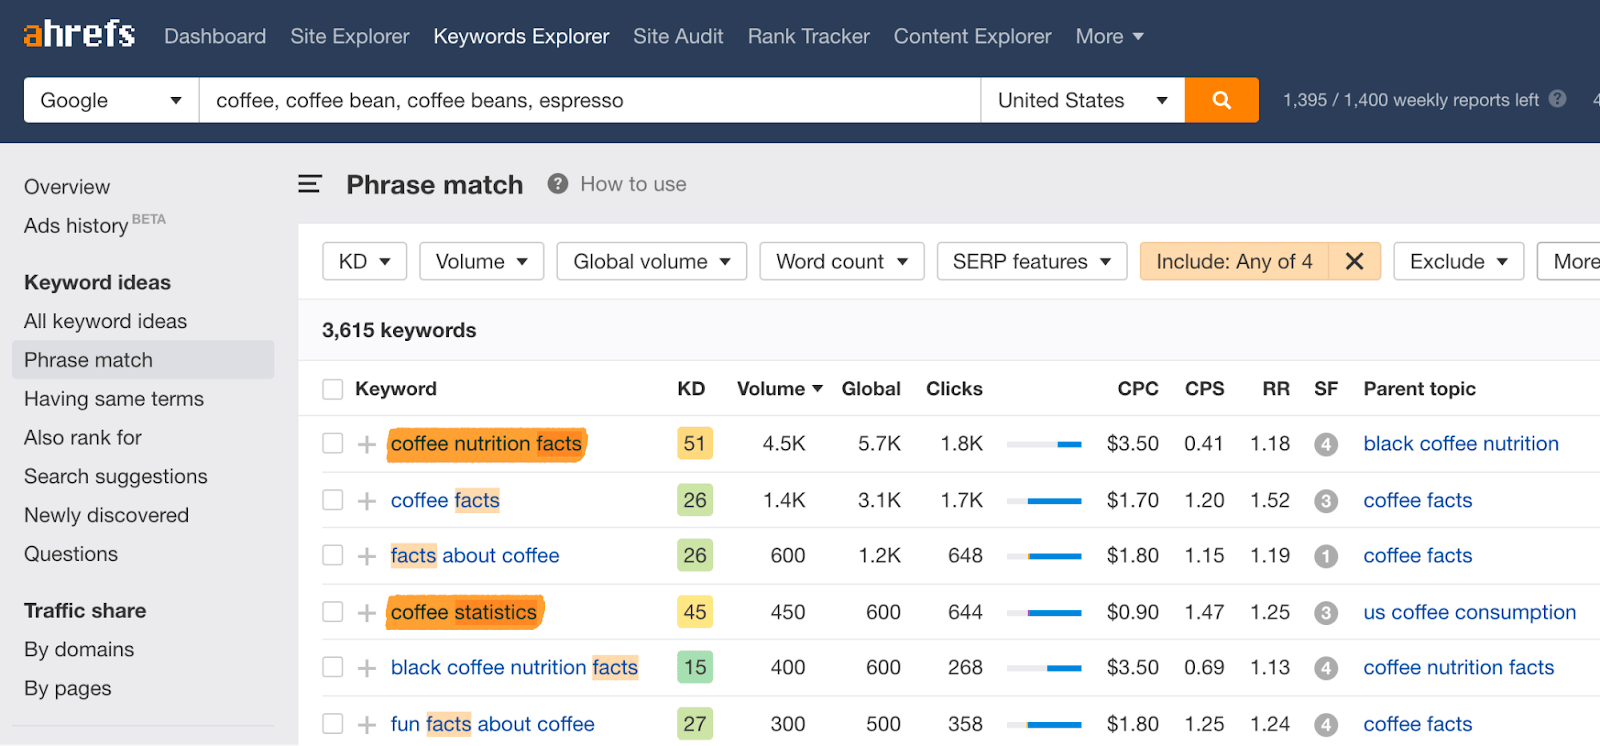 5 Keywords Explorer Facts Statistics